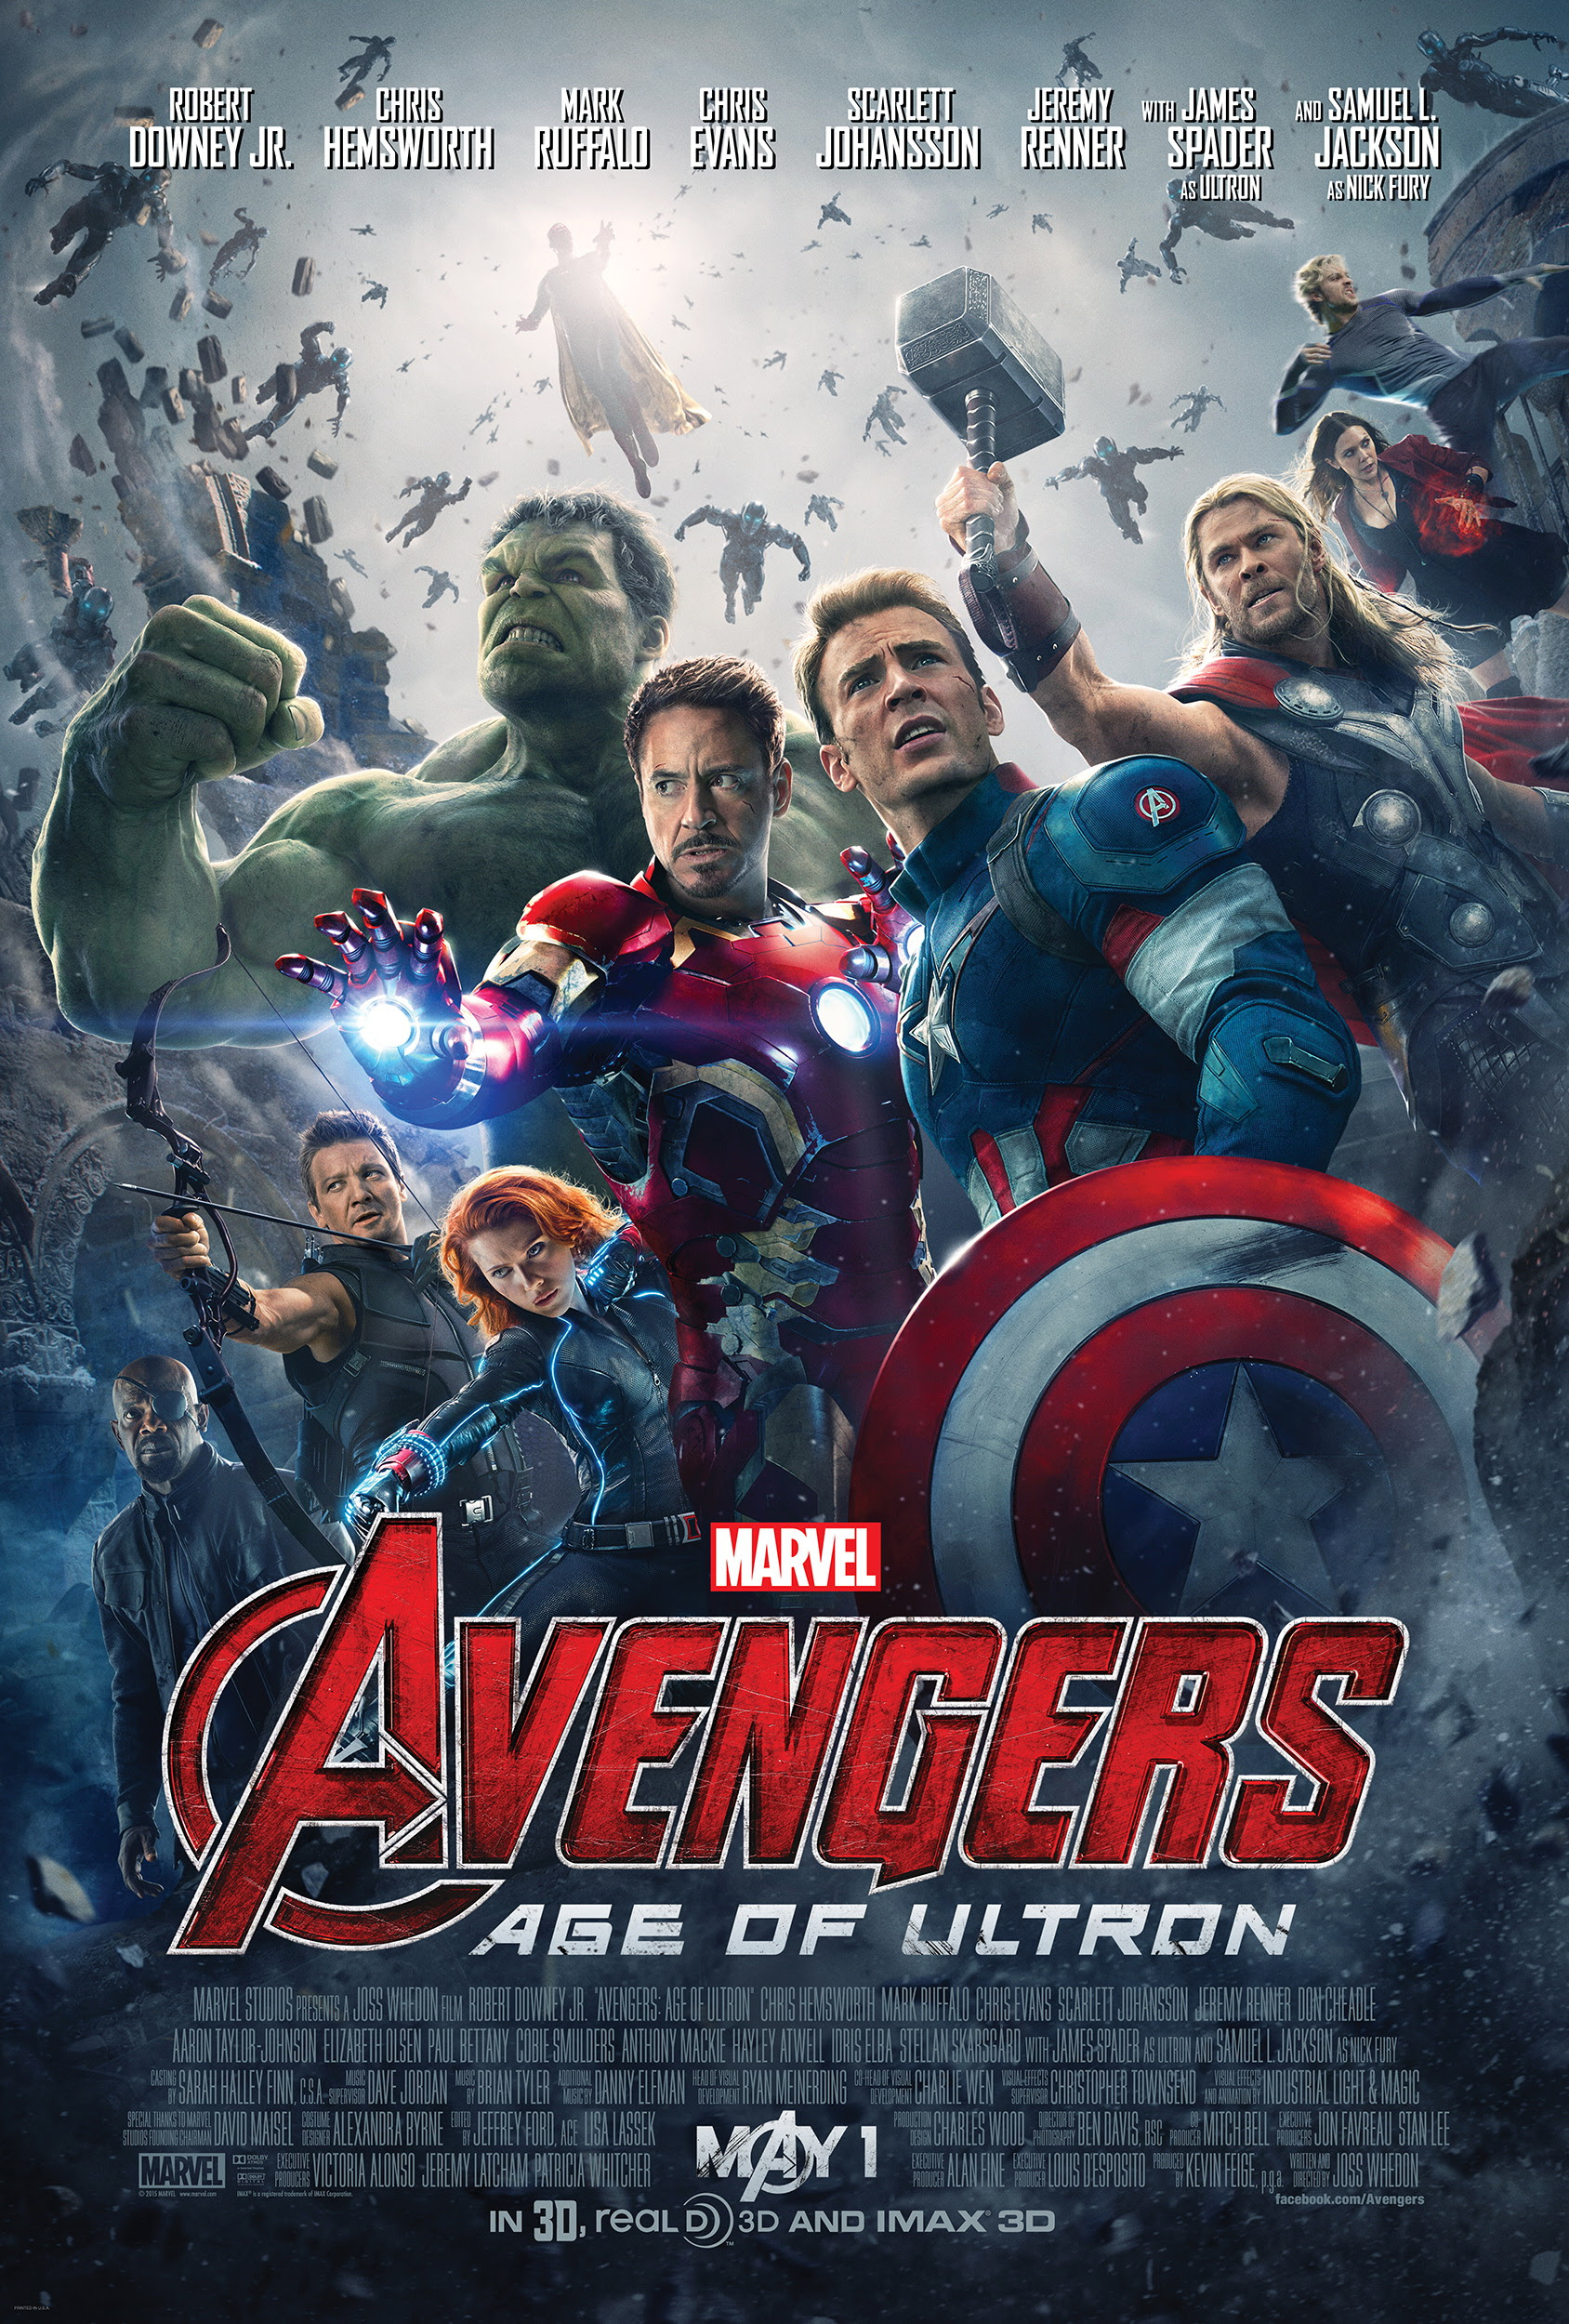 Avengers:Age of Ultron